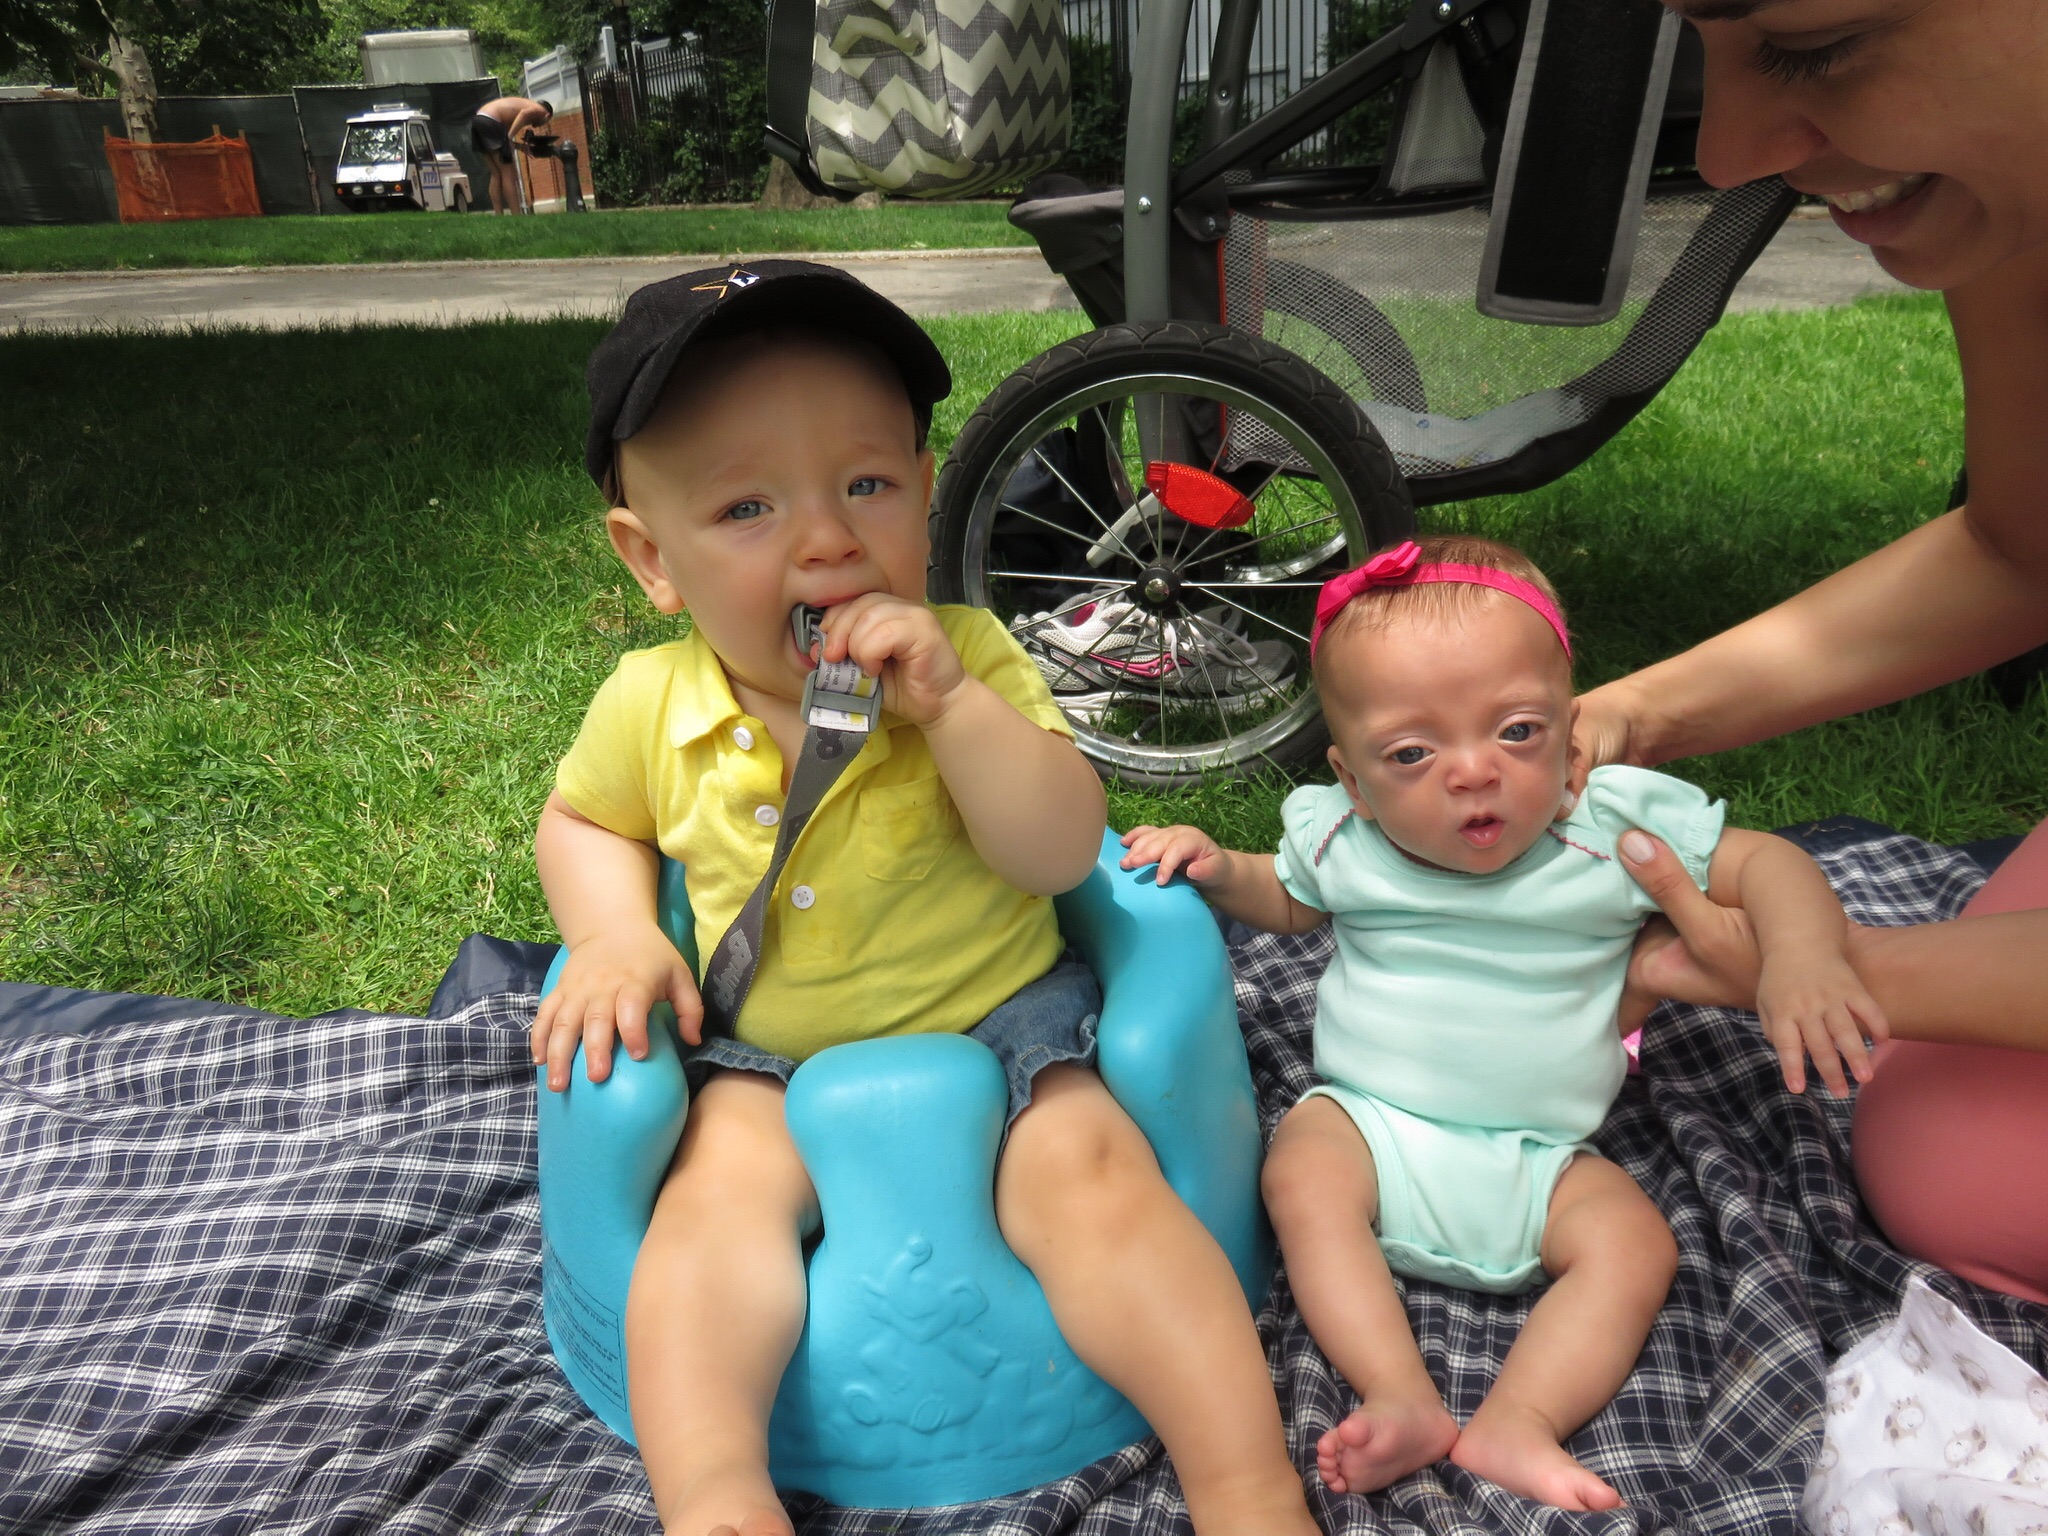 Back in NYC, Drea and Lucie enjoyed a picnic in Carl Shurz Park with Luke & Maggie.